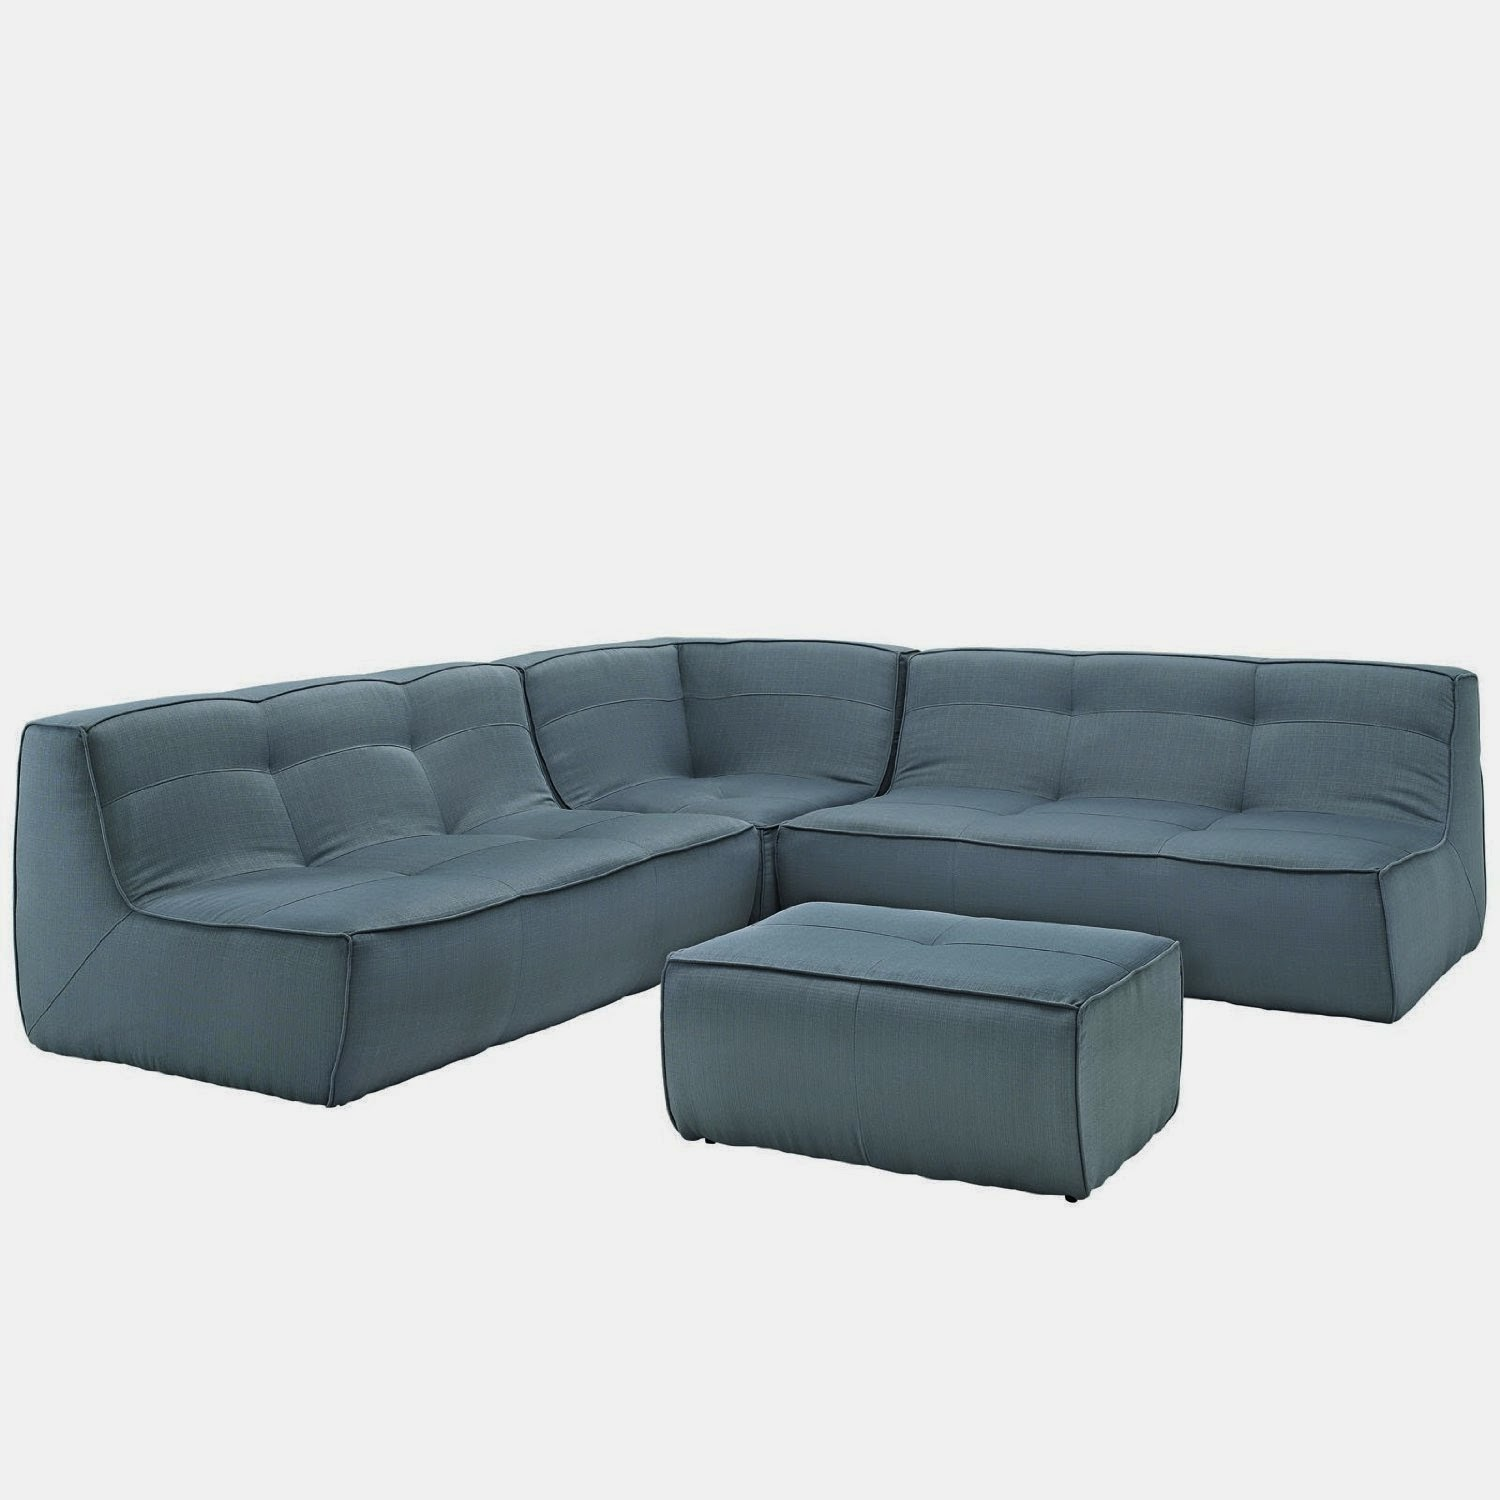 Blue Leather Sofa Bed picture on blue sectional couch with Blue Leather Sofa Bed, sofa db4084212ca50e54ead8d722b76fbbf7